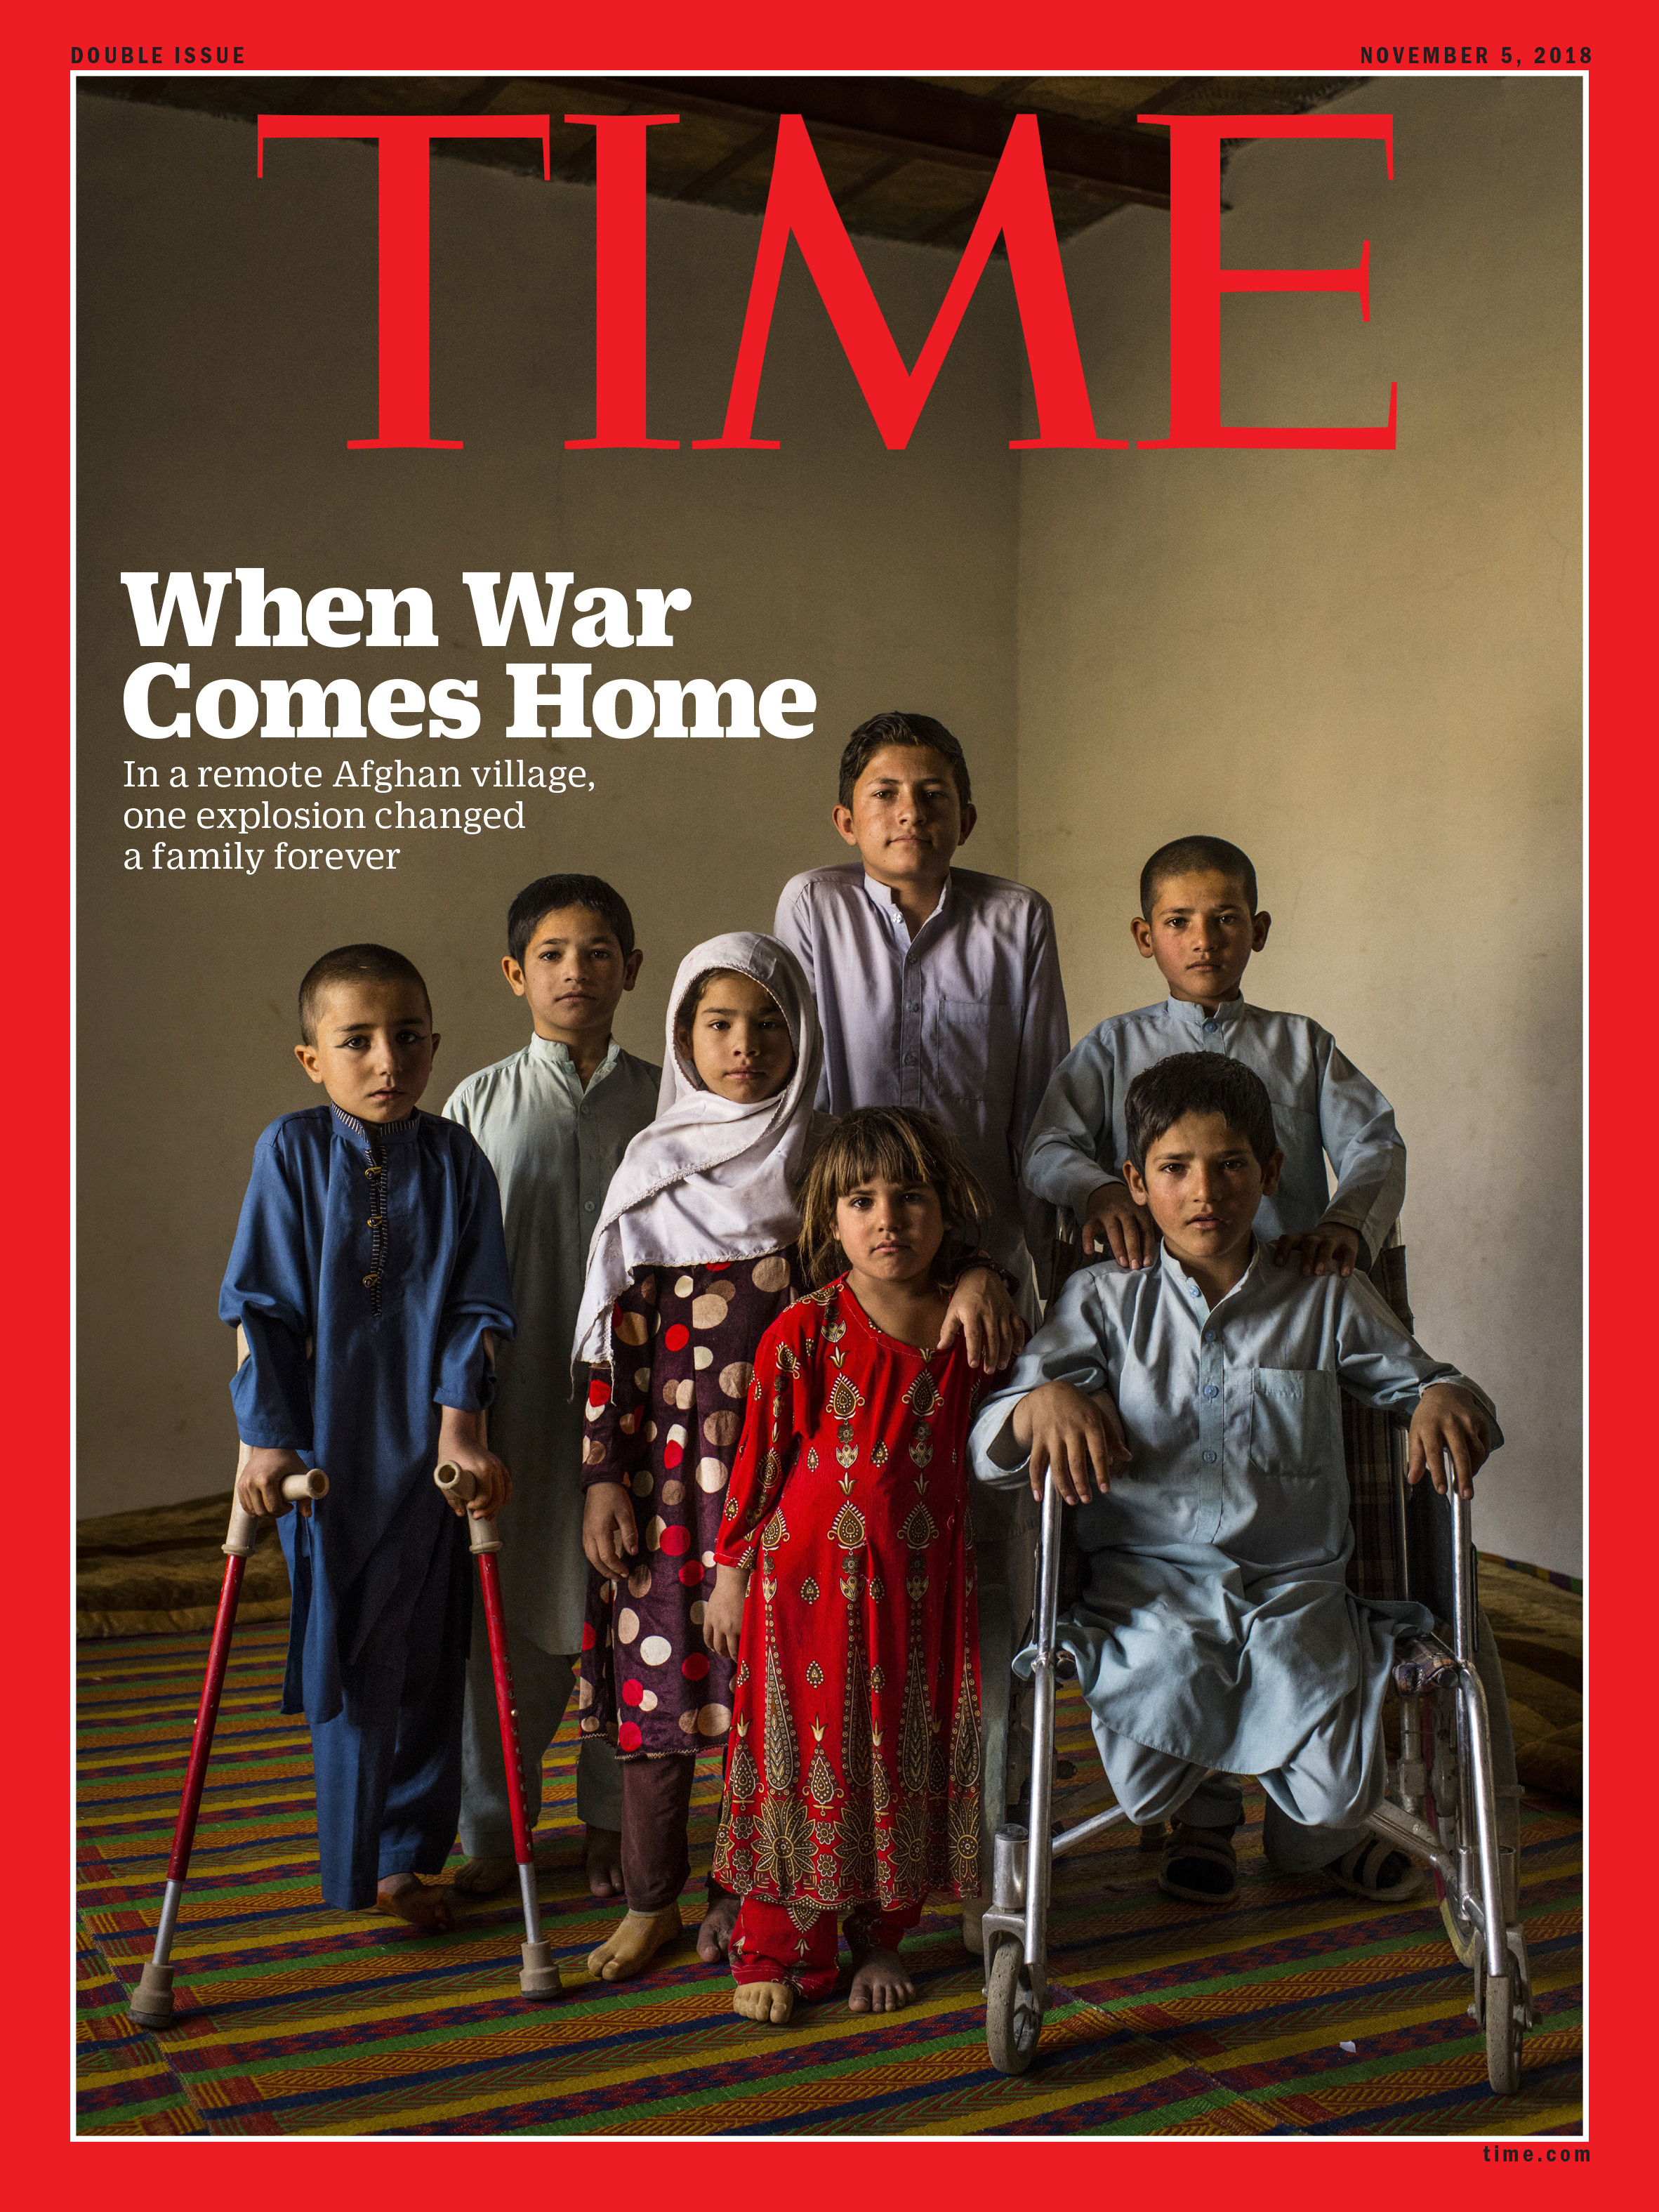 The seven children inside their makeshift home classroom on Oct. 11. From left: Aman, Mangal, Rabia, Marwa, Shafiqullah (at rear), Abdul Rashid (in wheelchair) and his twin Bashir. Abdul Rashid, who aggravated one of his wounds while wrestling with his brothers, was the only one yet to be fitted for prostheses. Aman was waiting for his to be repaired, after breaking it while playing.